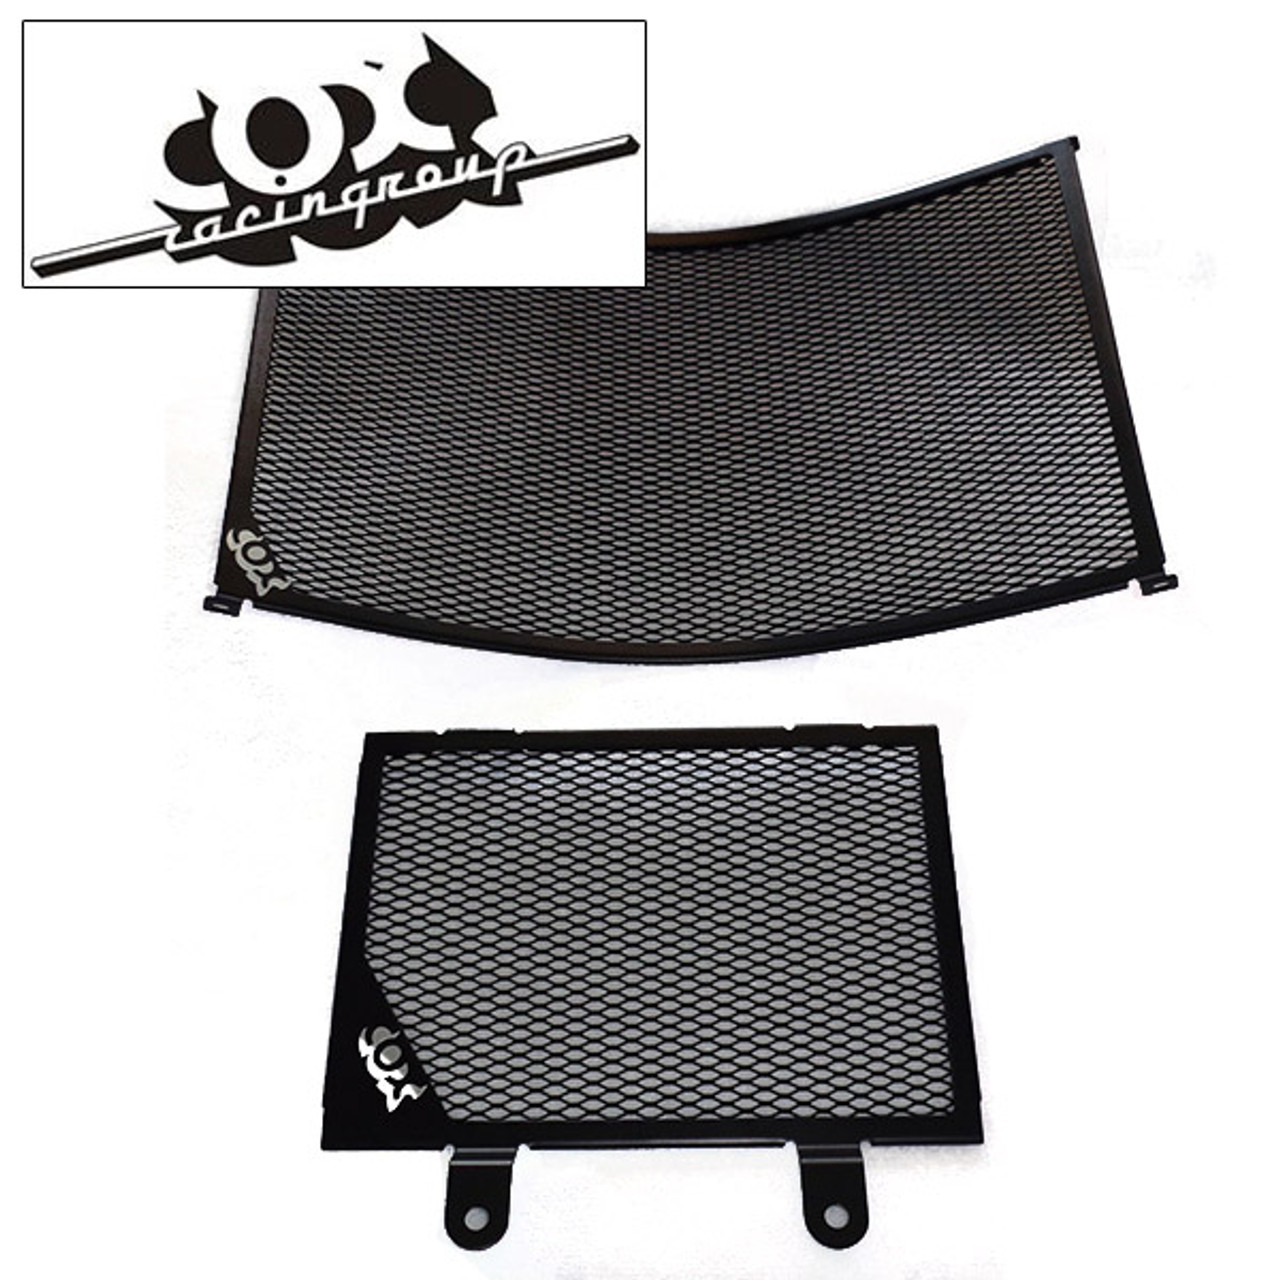 NO LOGO XFC-MOTUO Color : Silver Motorcycle Upper /& Lower Radiator Guard Oil Cooler Protector Fit For Yamaha YZF-R1 R1M 2015-2017 2016 Motor Accessories